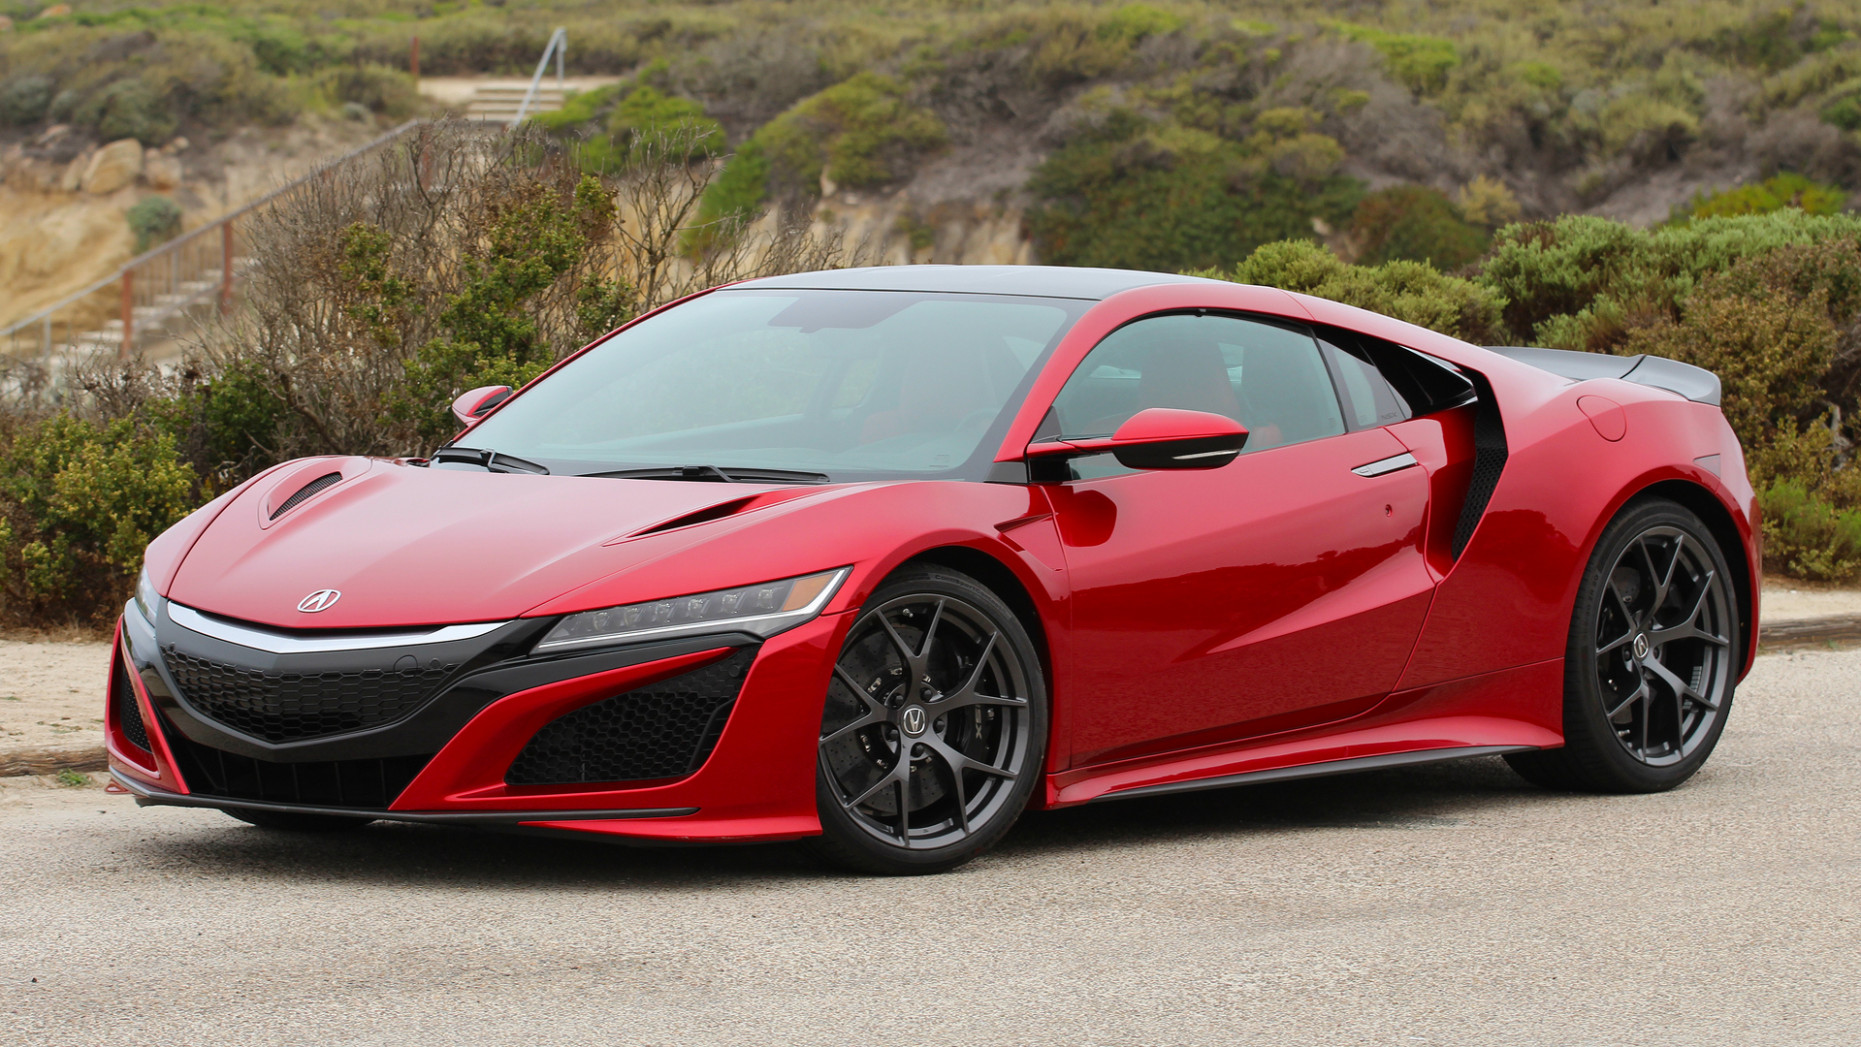 Acura NSX News and Reviews | Motor10